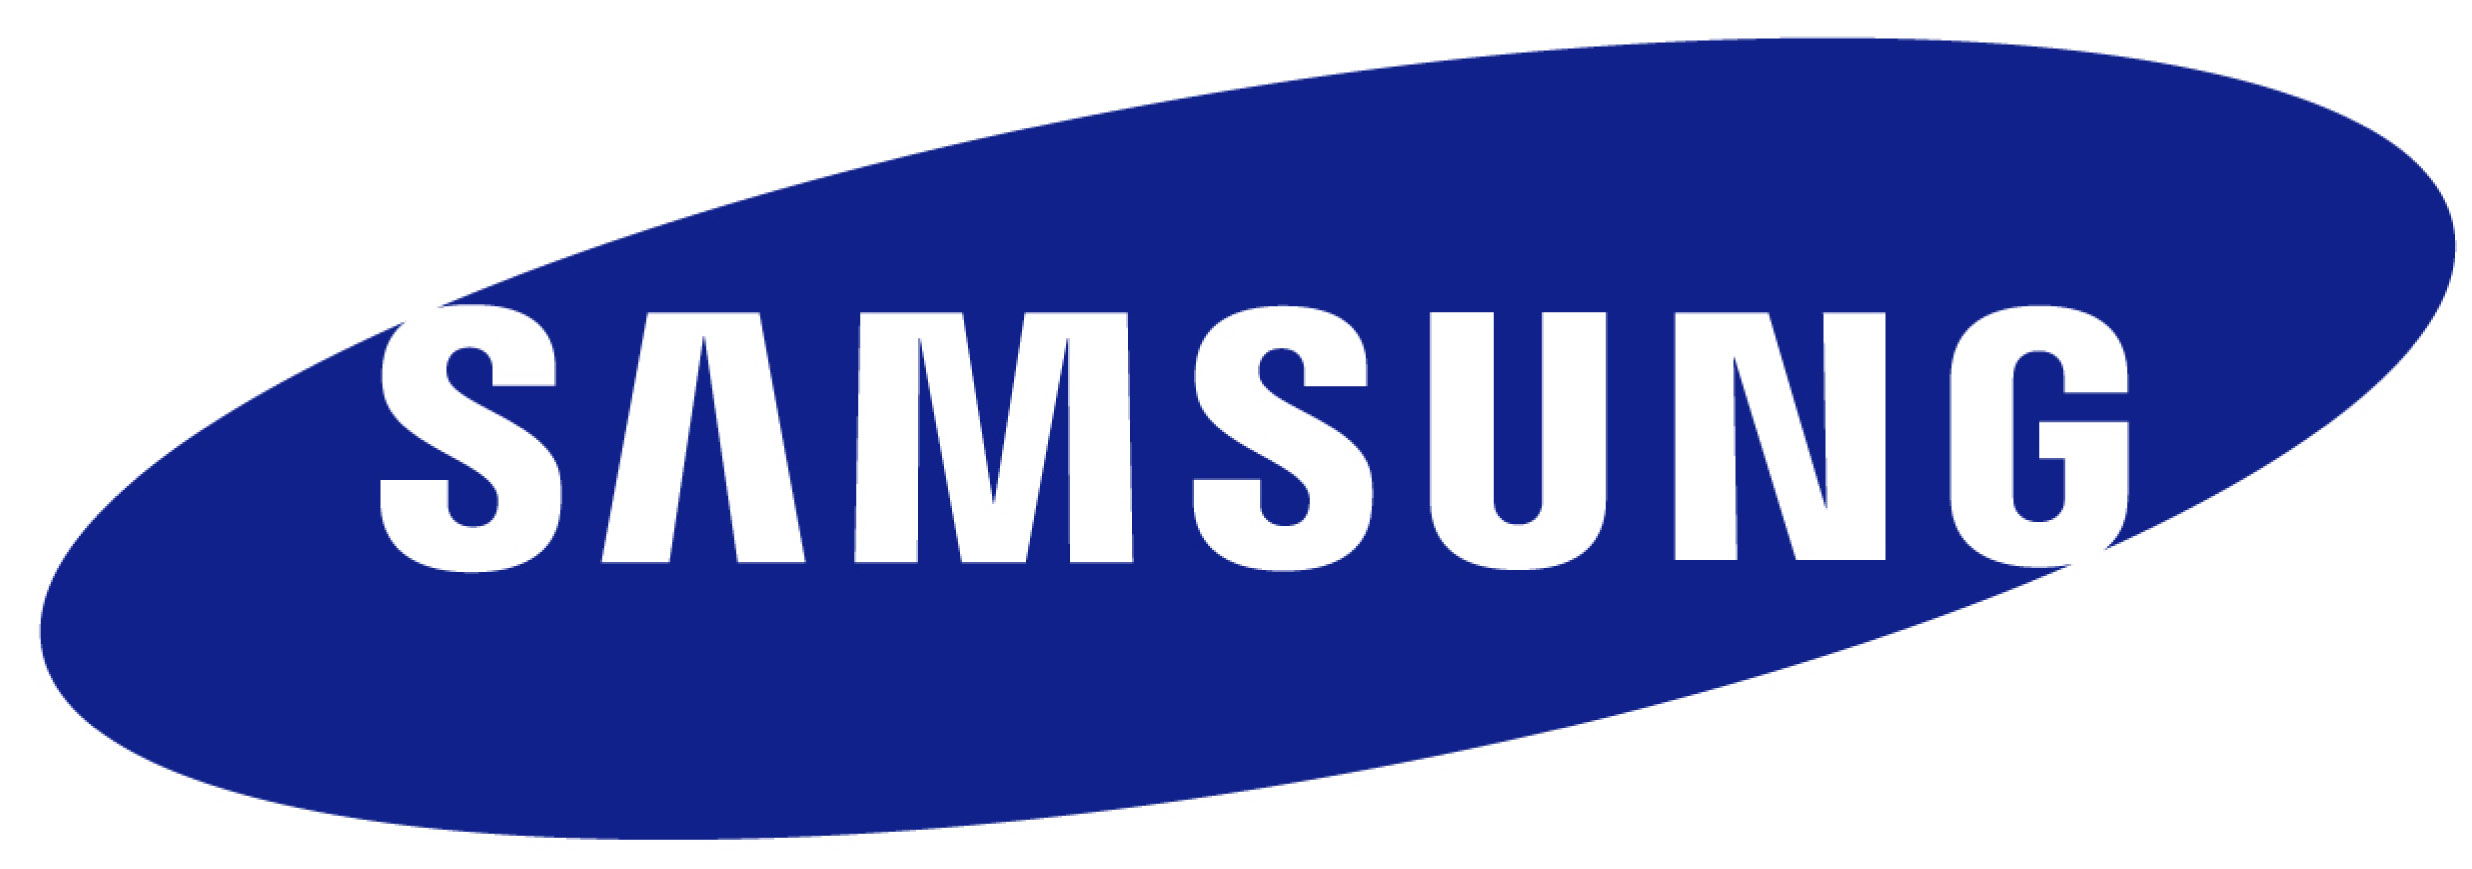 Samsung's Recently Announced 10.1 Inch 2560 x 1600 Display Could Feature In The iPad 3